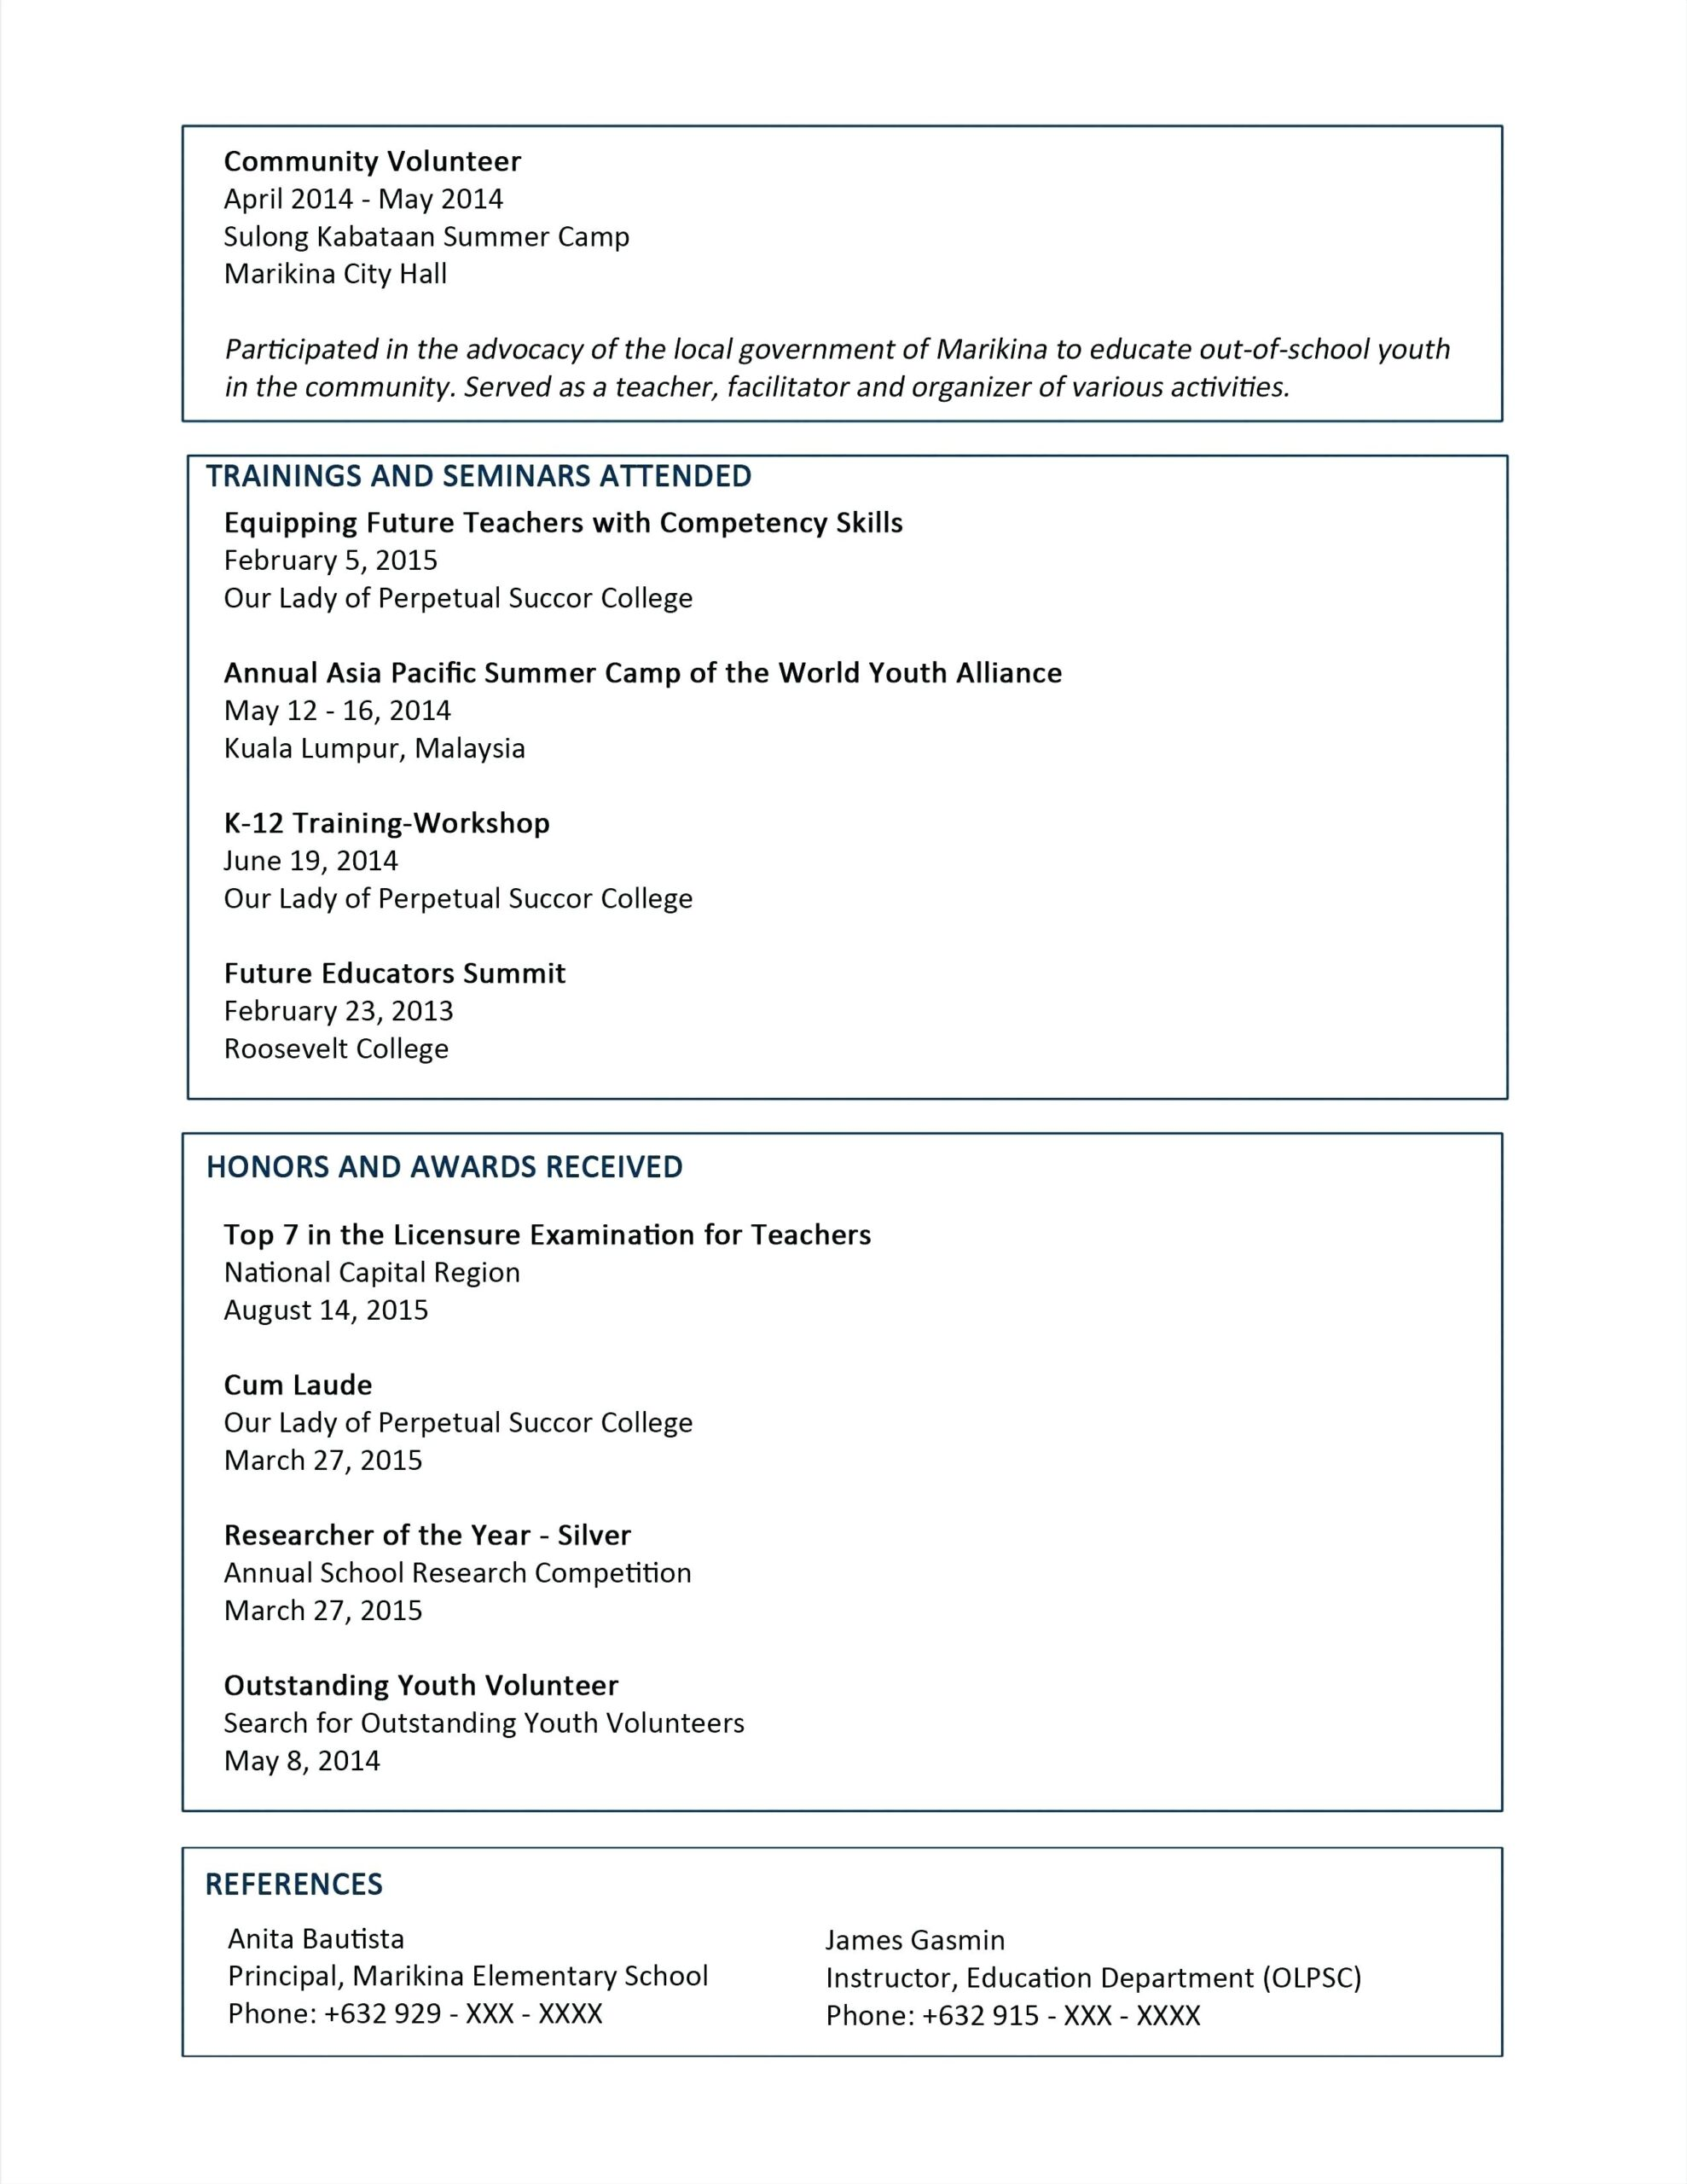 school secretary resume examples radaircars monster samples unique resumes lovely for Resume School Secretary Resume